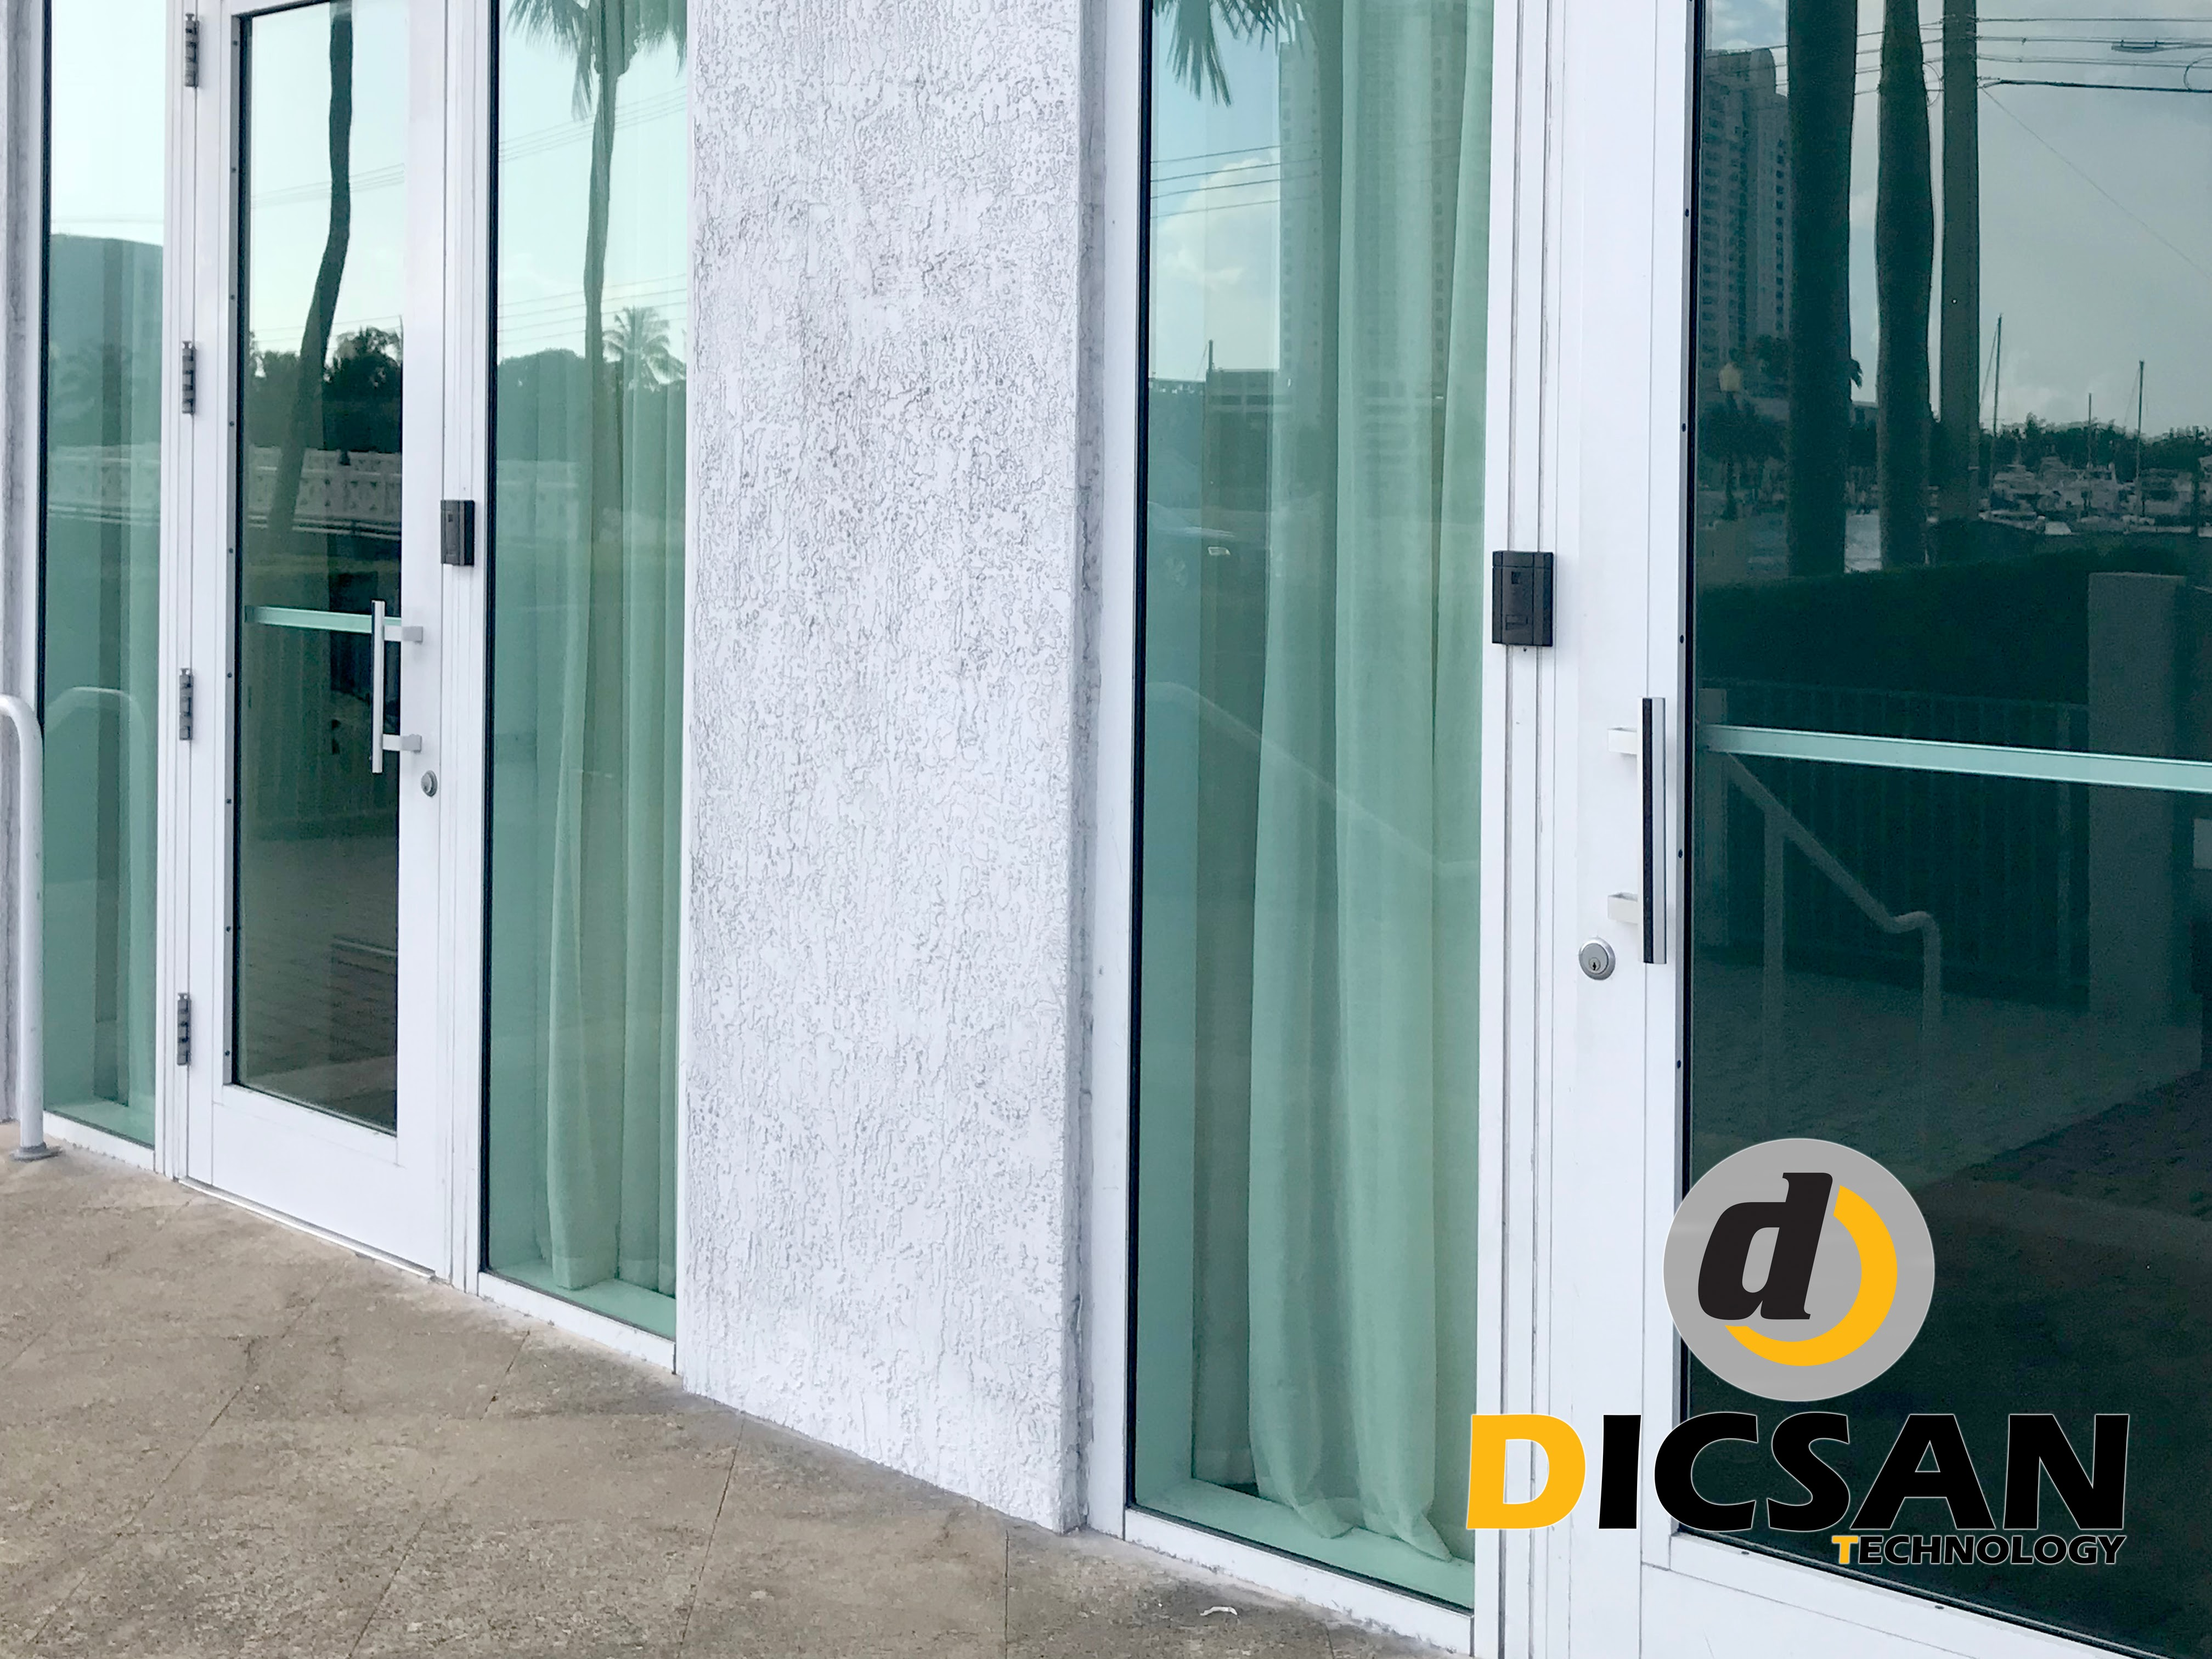 Millennium Access Control System at Condominium in Miami Beach